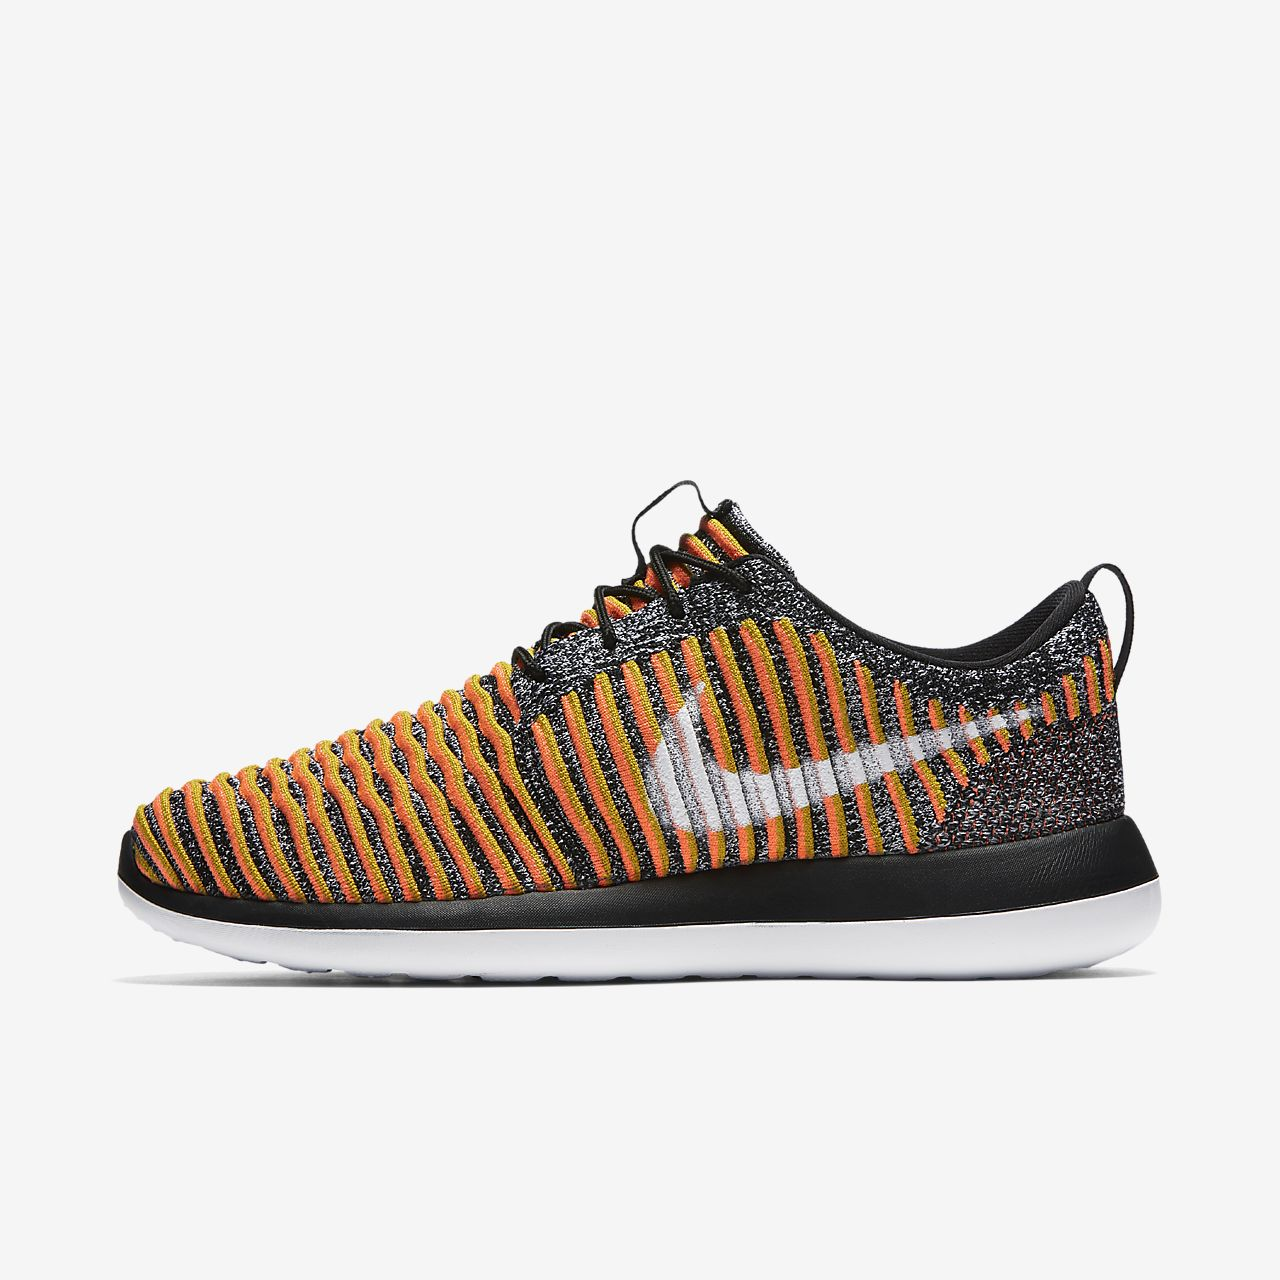 ... Nike Roshe Two Flyknit Women's Shoe